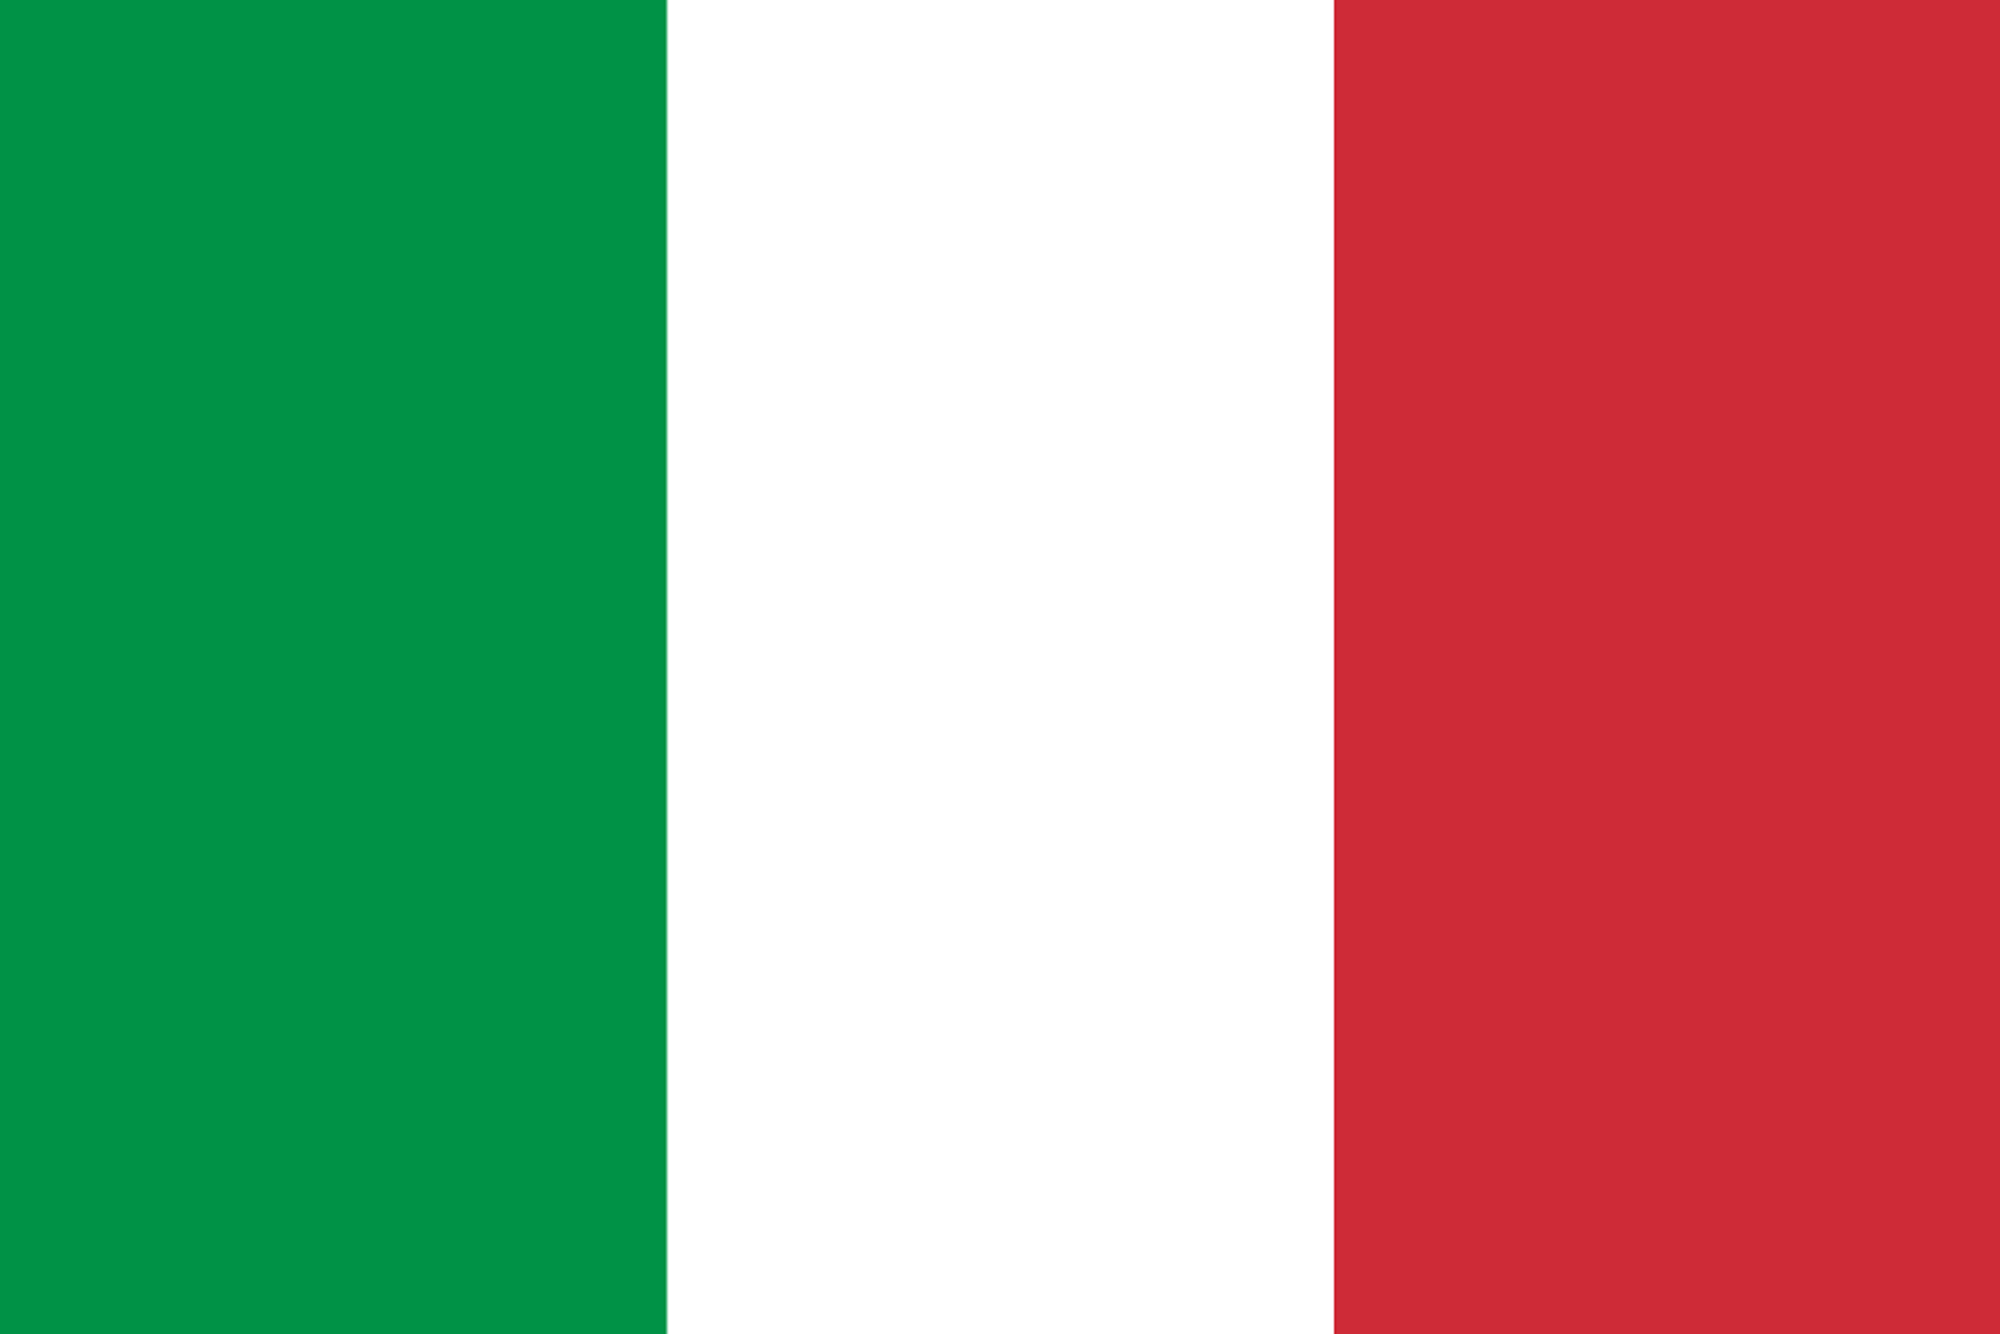 italy-flag-large.png